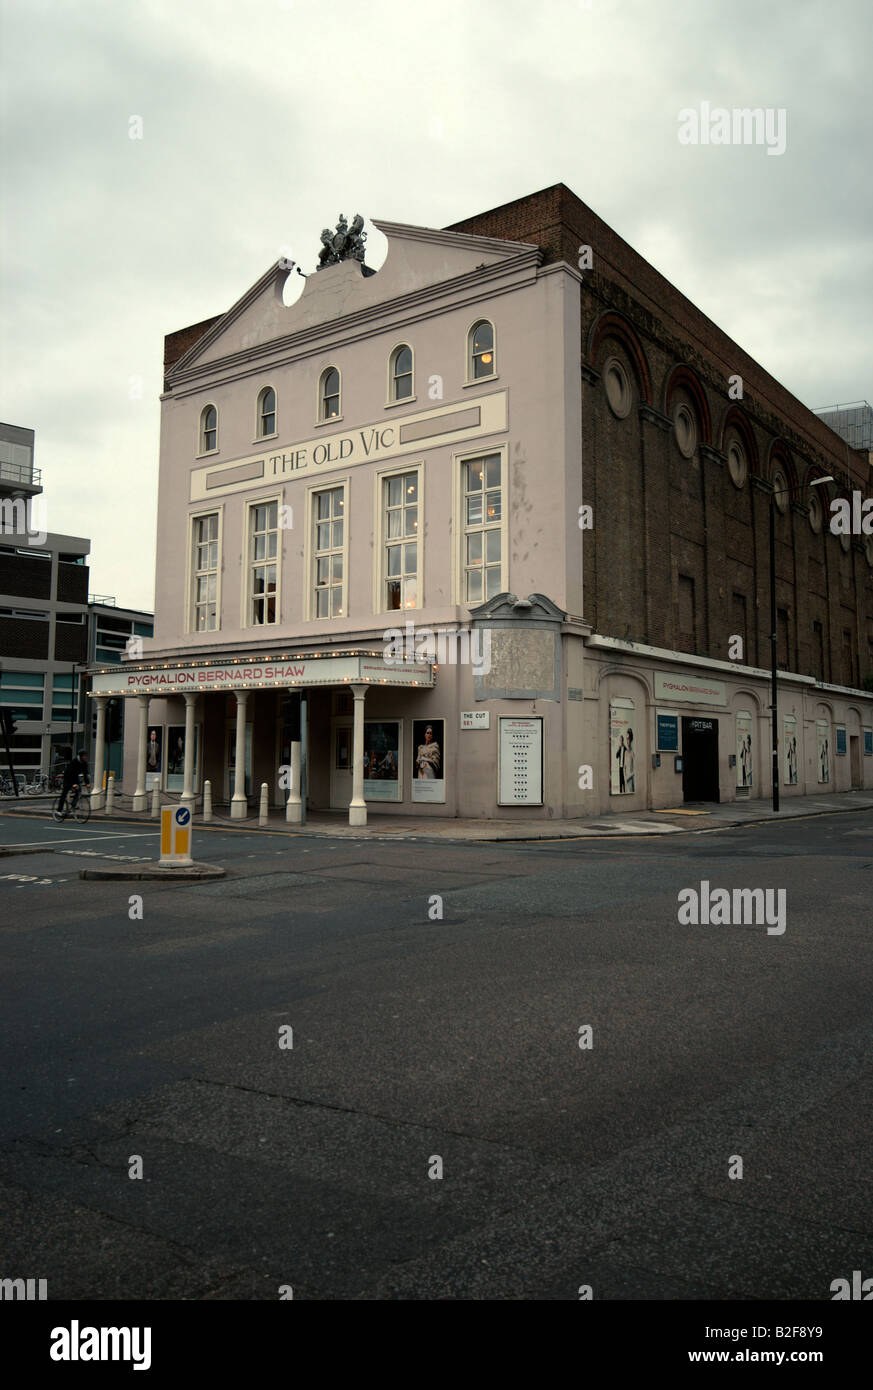 The Old Vic theatre in London playing Bernard Shaw's Pygmalion. - Stock Image